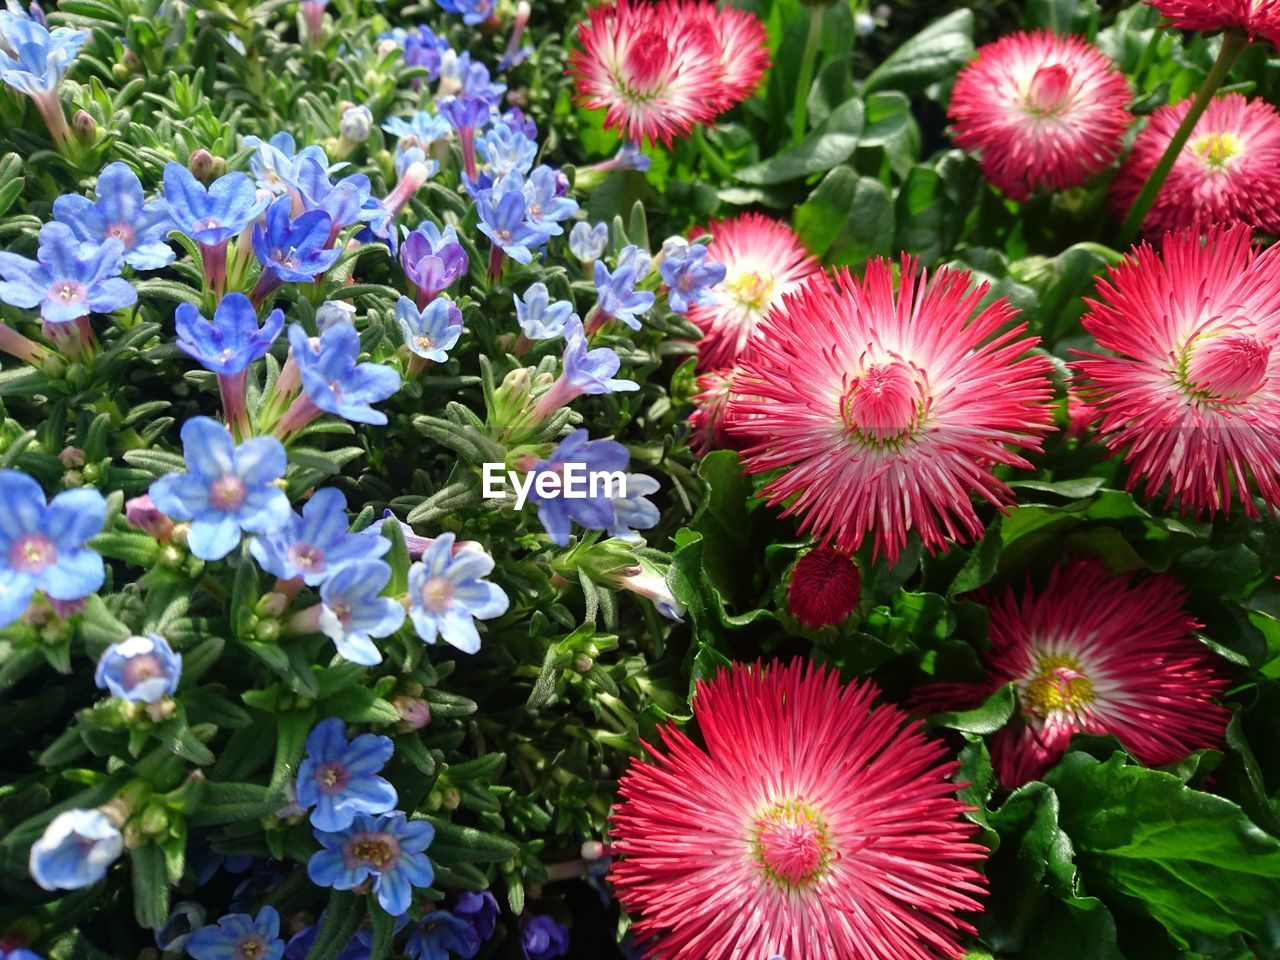 flowering plant, flower, plant, freshness, vulnerability, fragility, beauty in nature, flower head, inflorescence, petal, growth, close-up, nature, no people, day, high angle view, outdoors, multi colored, choice, variation, pollen, flower arrangement, bunch of flowers, purple, bouquet